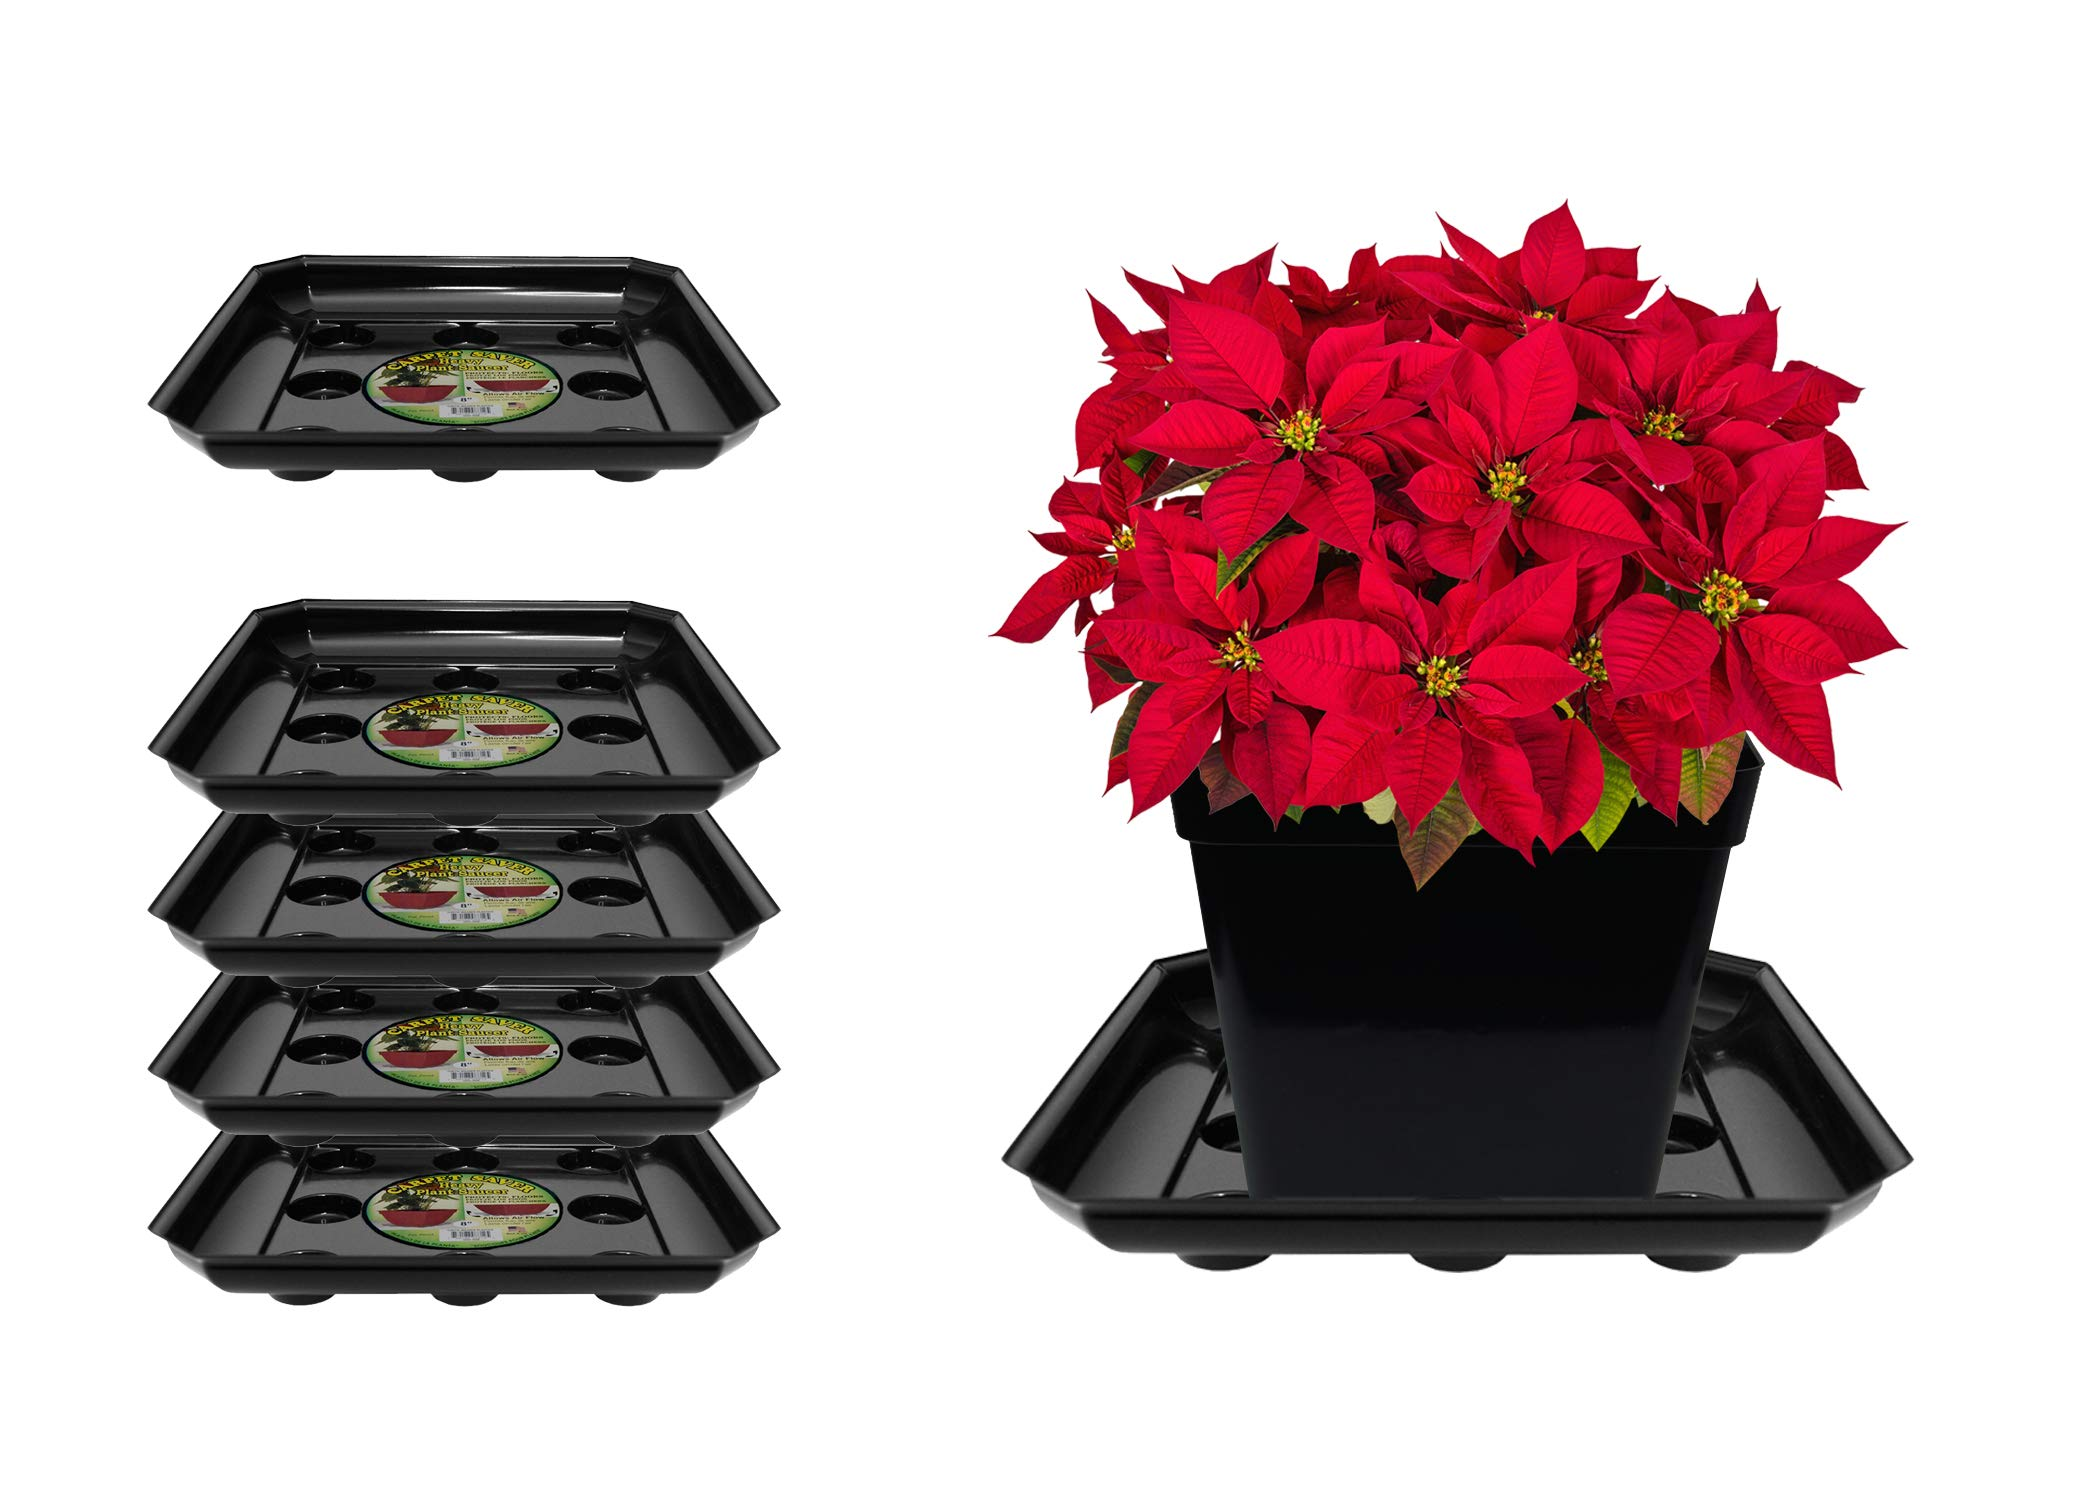 Curtis Wagner Plastics SQDS-1600B Carpet Saver Plant Tray Drip Pans (5-Pack) - Black, Square (Diameter = 16'' top, 13.75'' Bottom, 1.62'' Depth) Thick Plastic Indoor & Garden - Clear, Black & Terracotta by Curtis Wagner Plastics Corp.